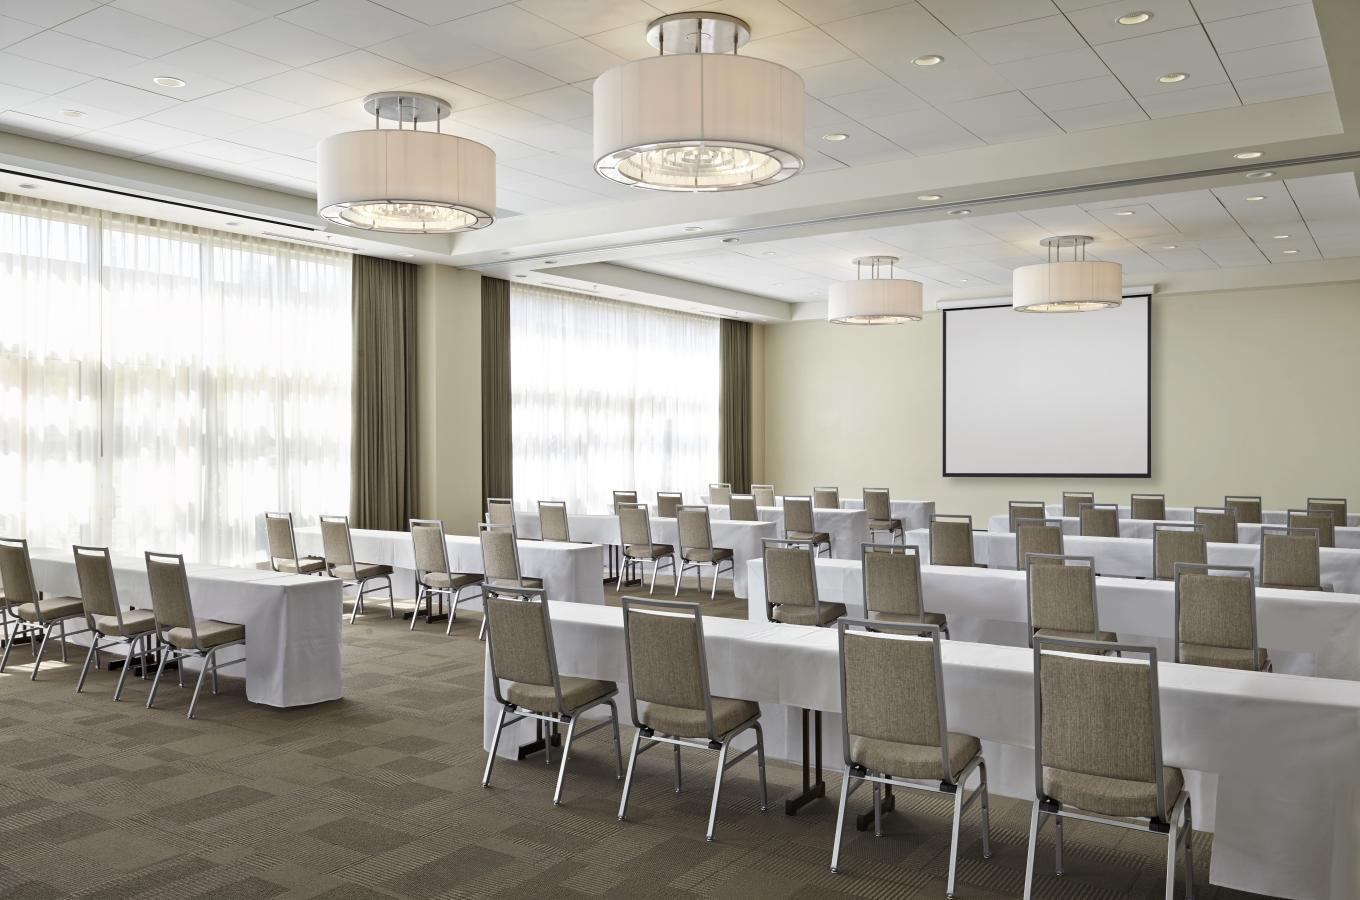 Meritage Ballroom Classroom Set Up